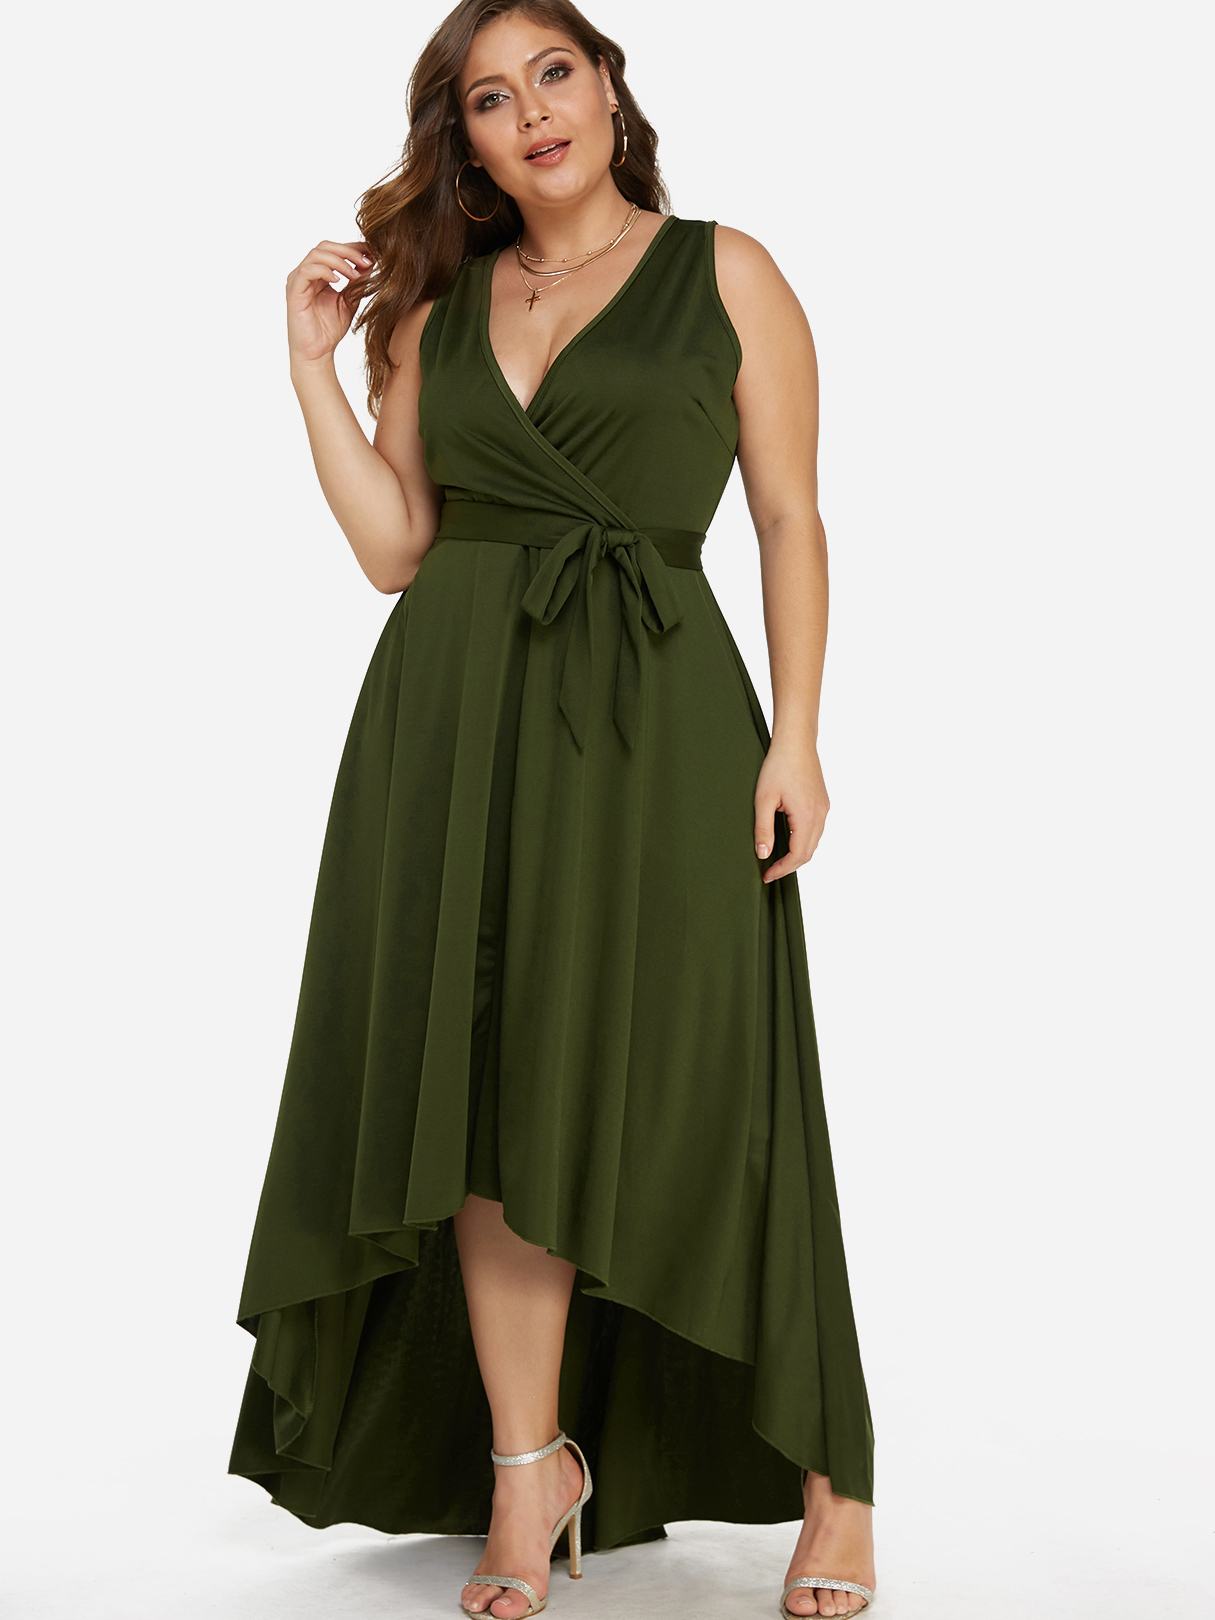 Army Green Self-tie Sleeveless Irregular Hem Dress army green v neck half sleeve dress